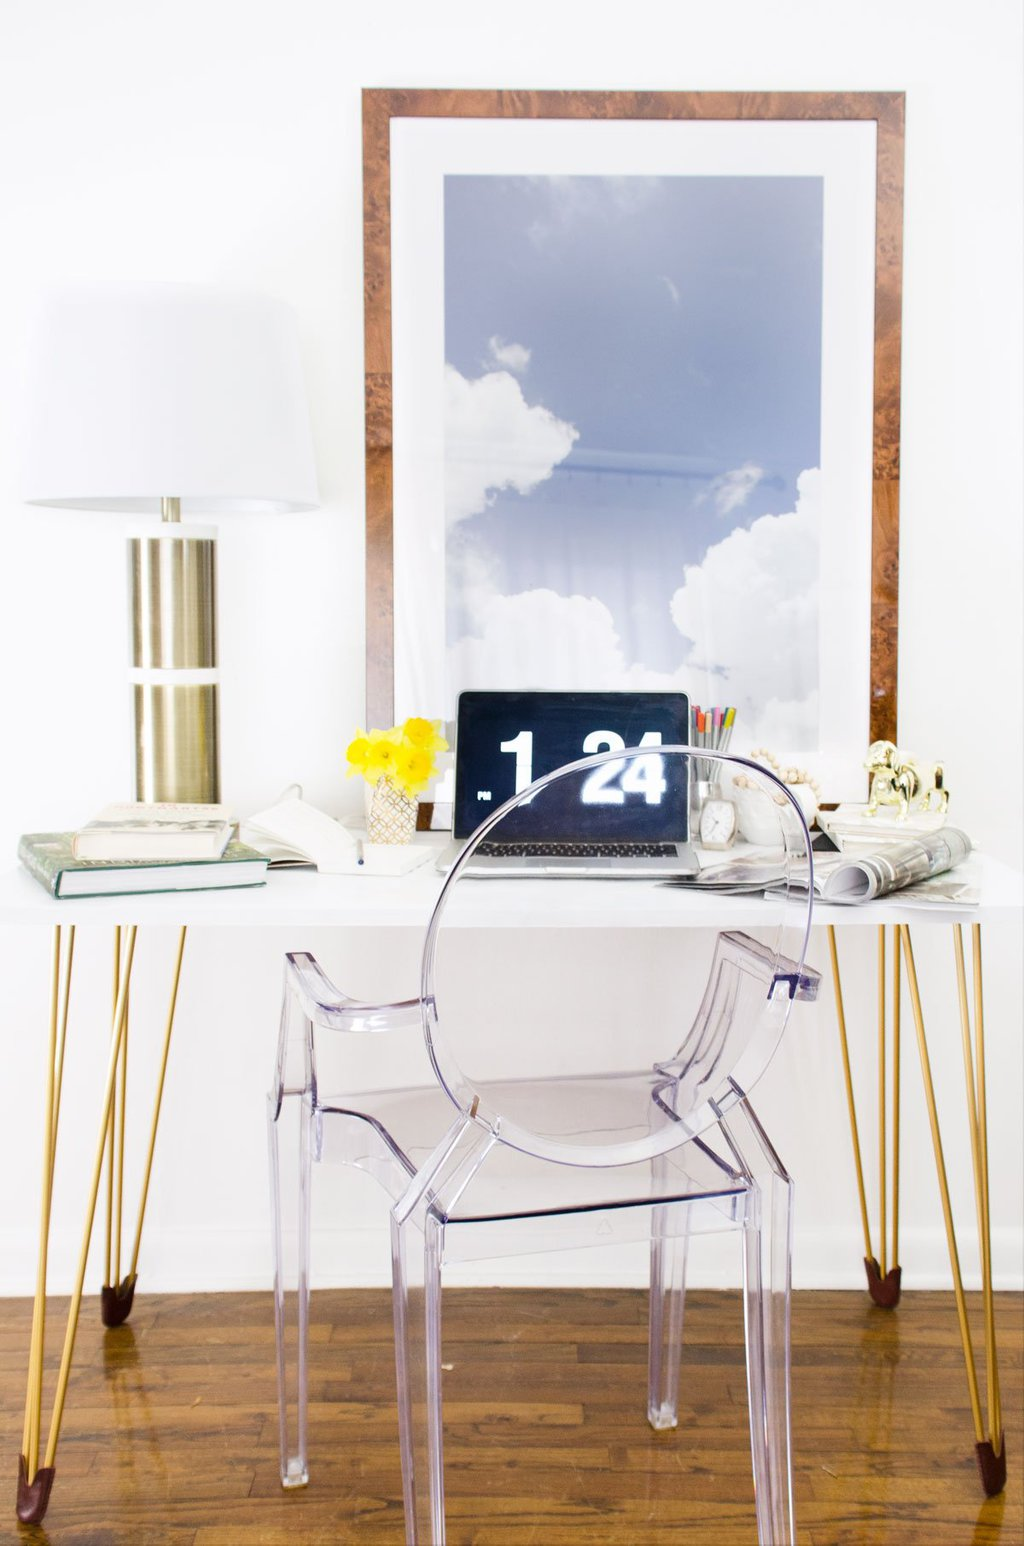 How To Make A Diy Desk With Gold Hairpin Legs From Prettypegs On Thouswellblog